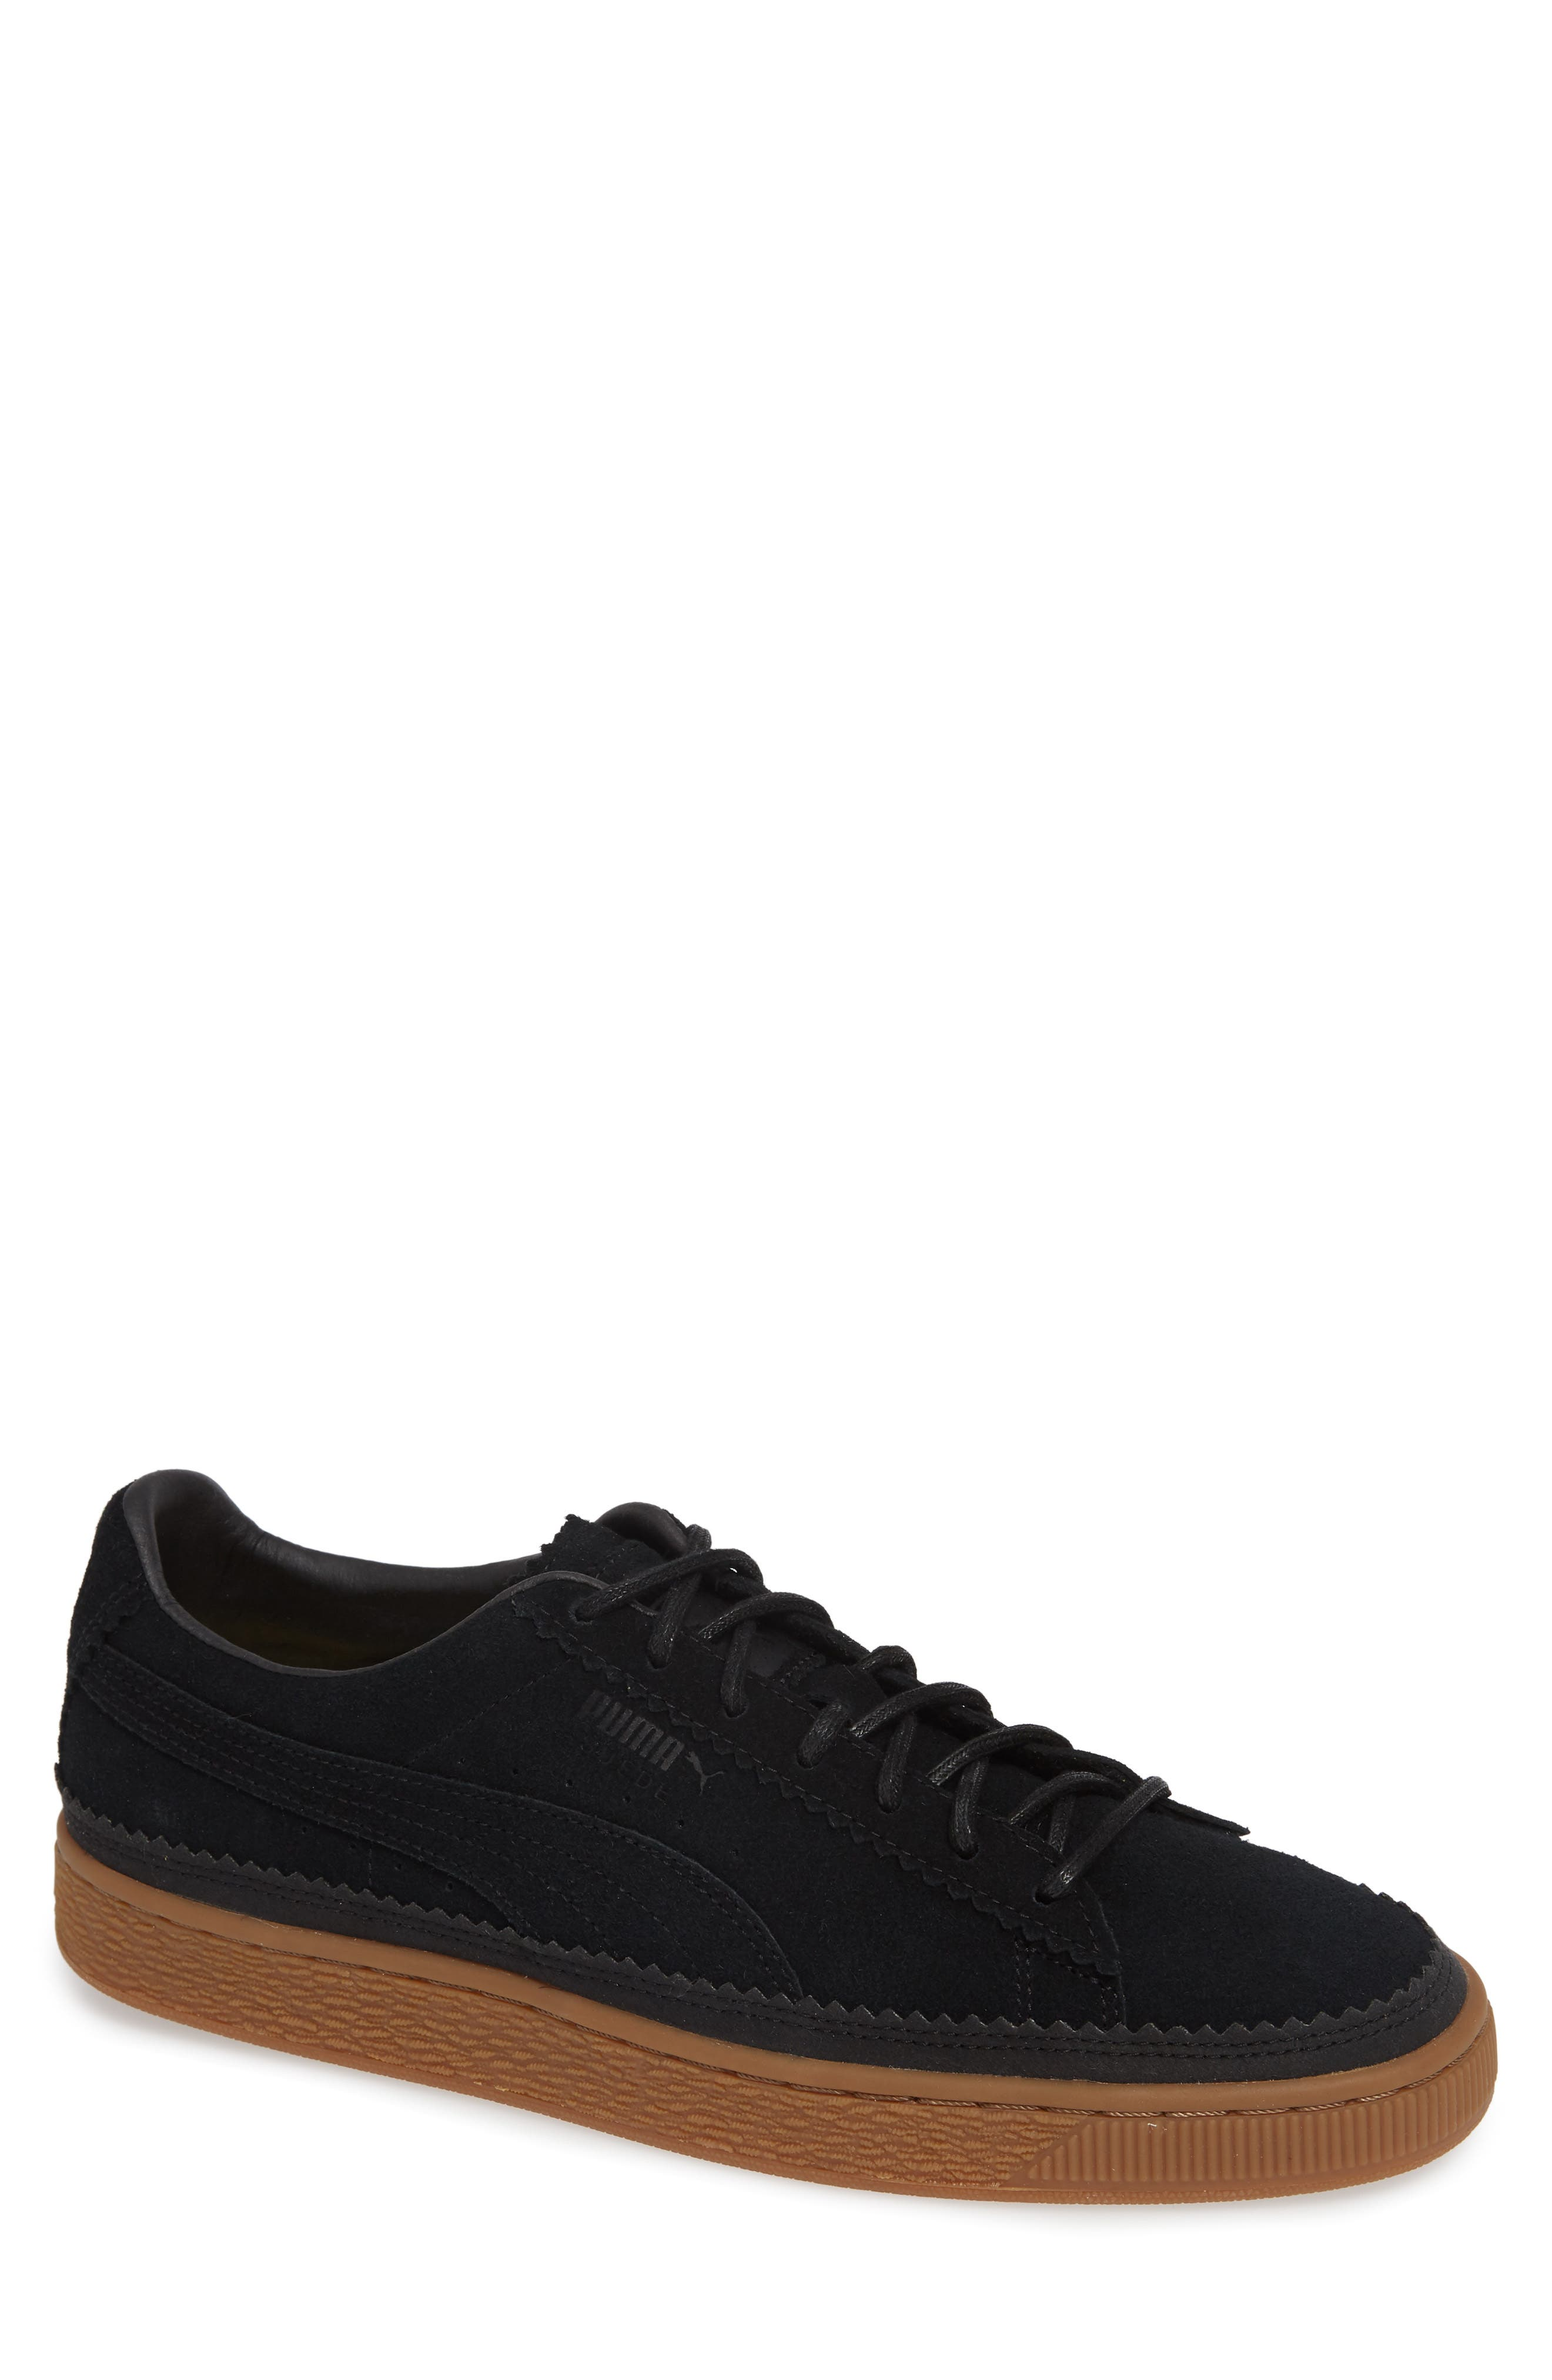 Suede Sneaker,                         Main,                         color, BLACK/ BLACK